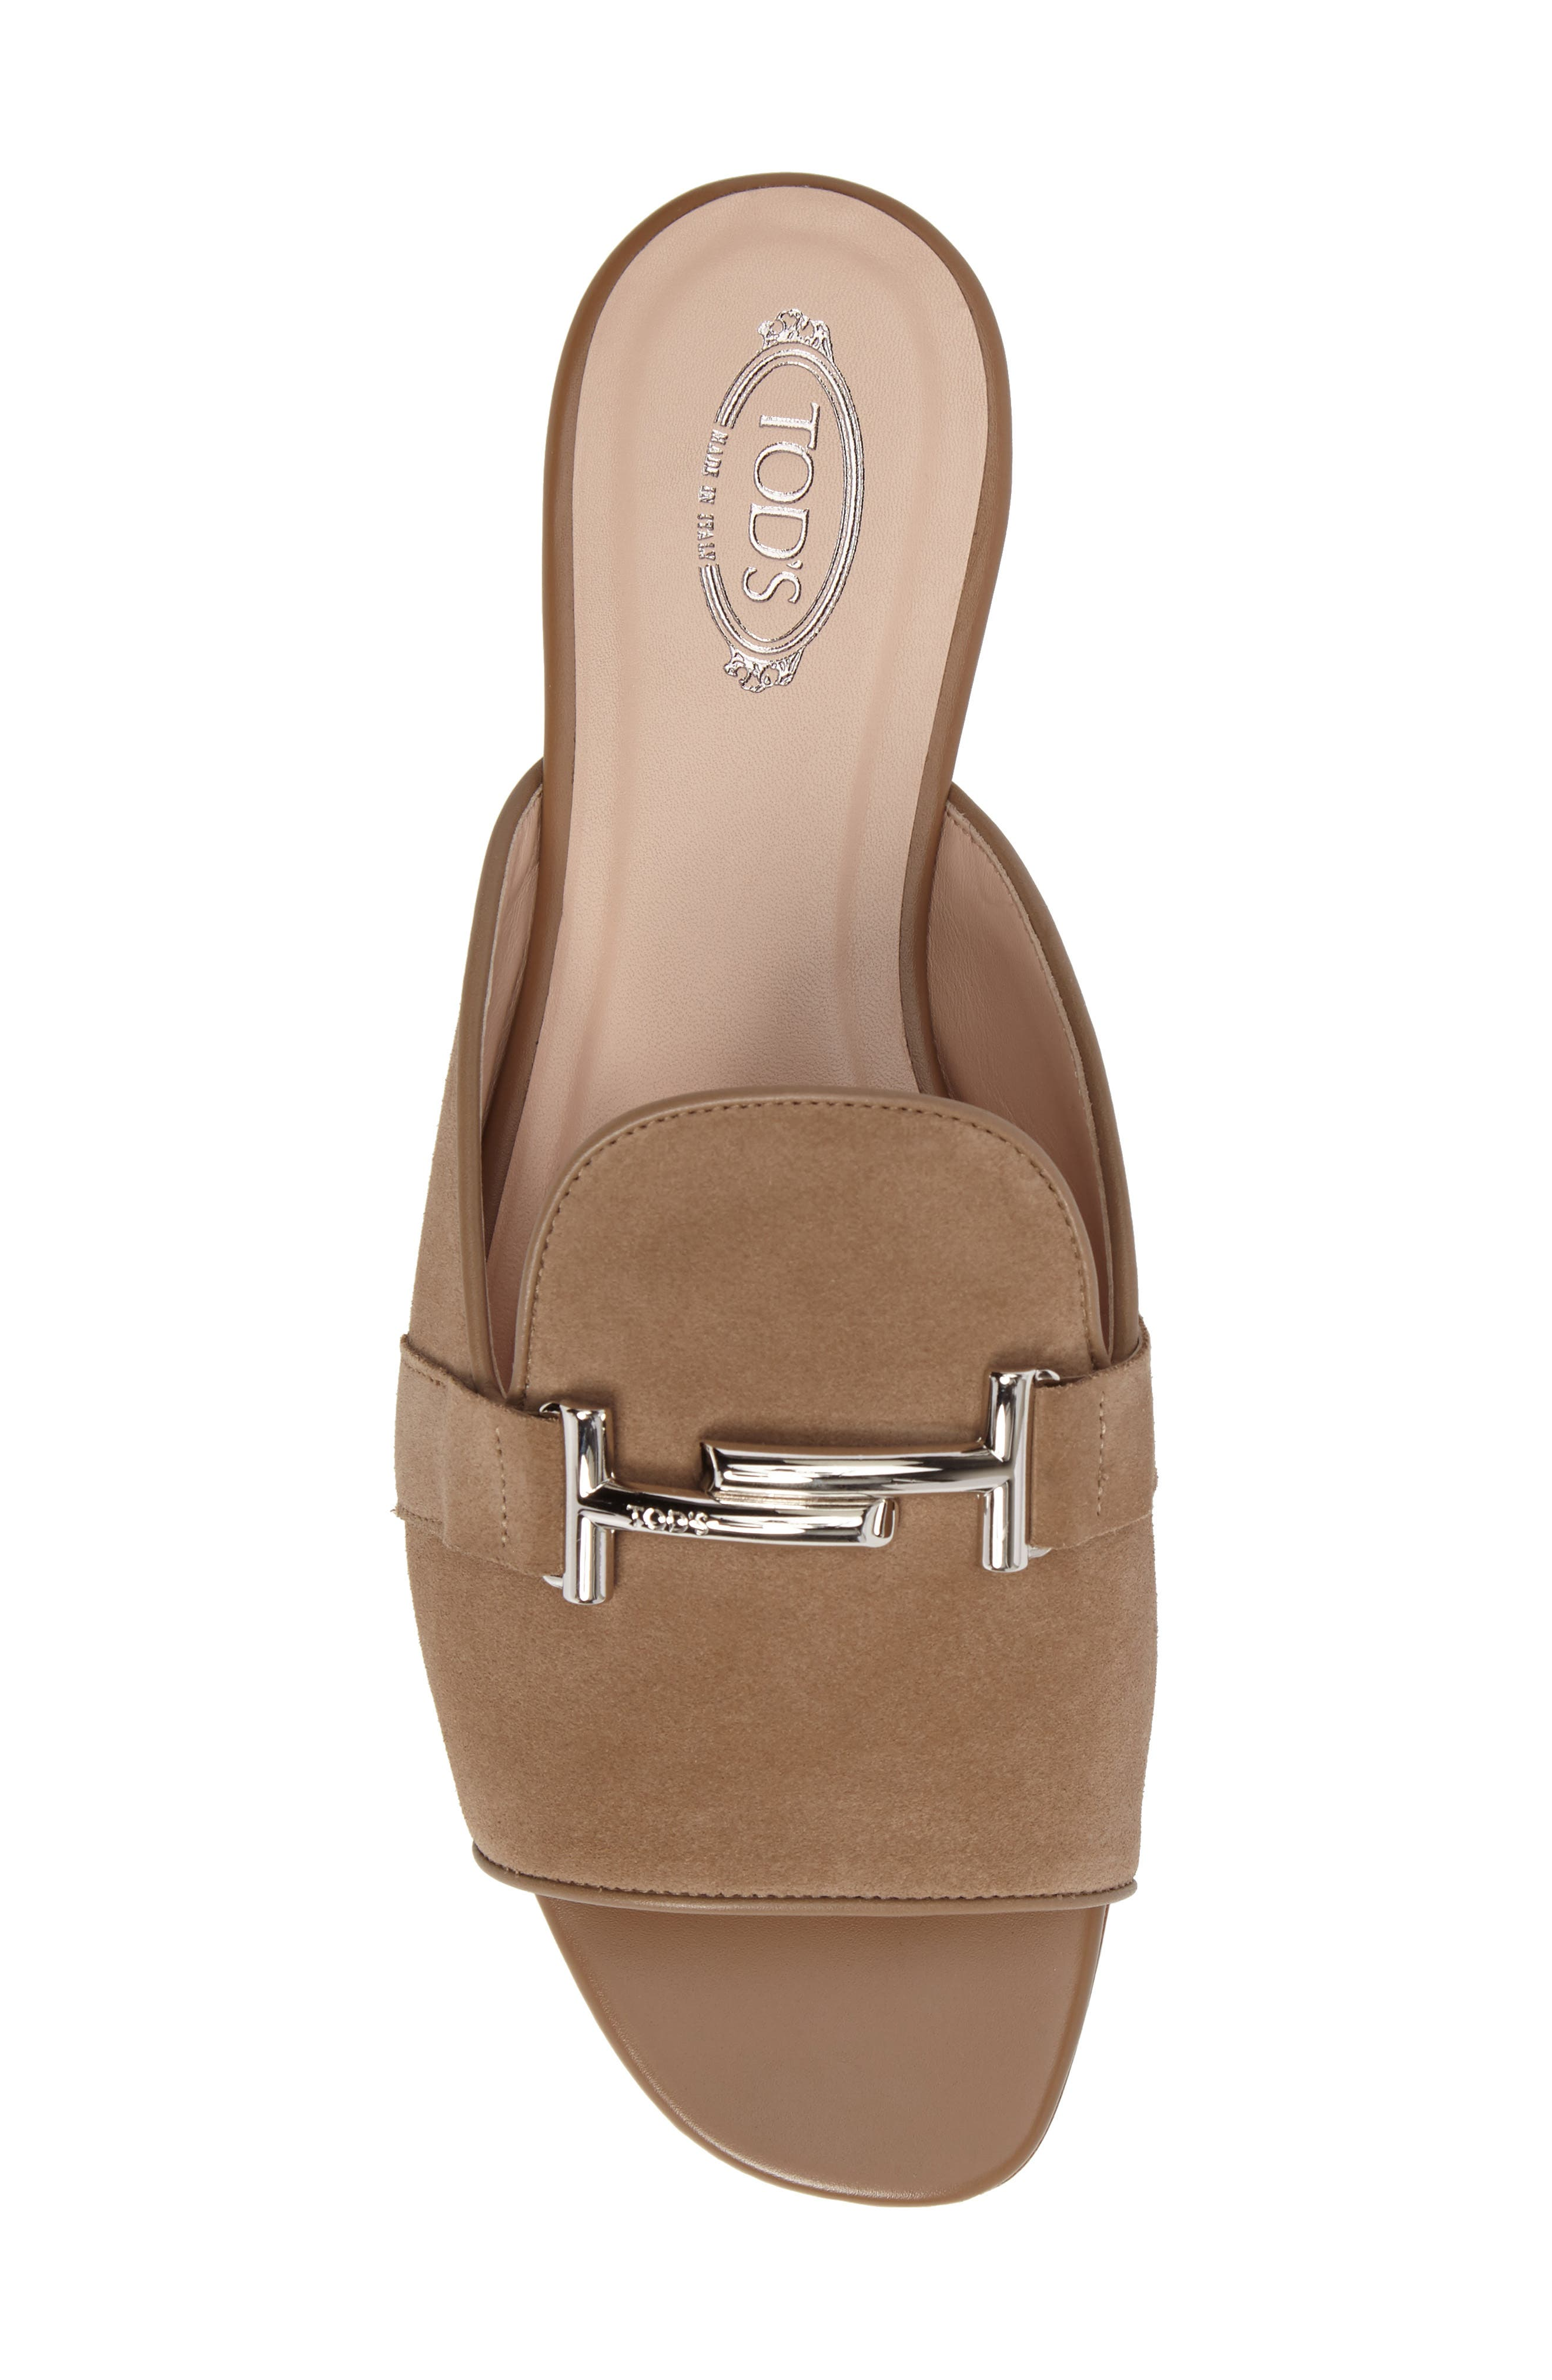 Double T Open Toe Loafer Mule,                             Alternate thumbnail 4, color,                             Tan